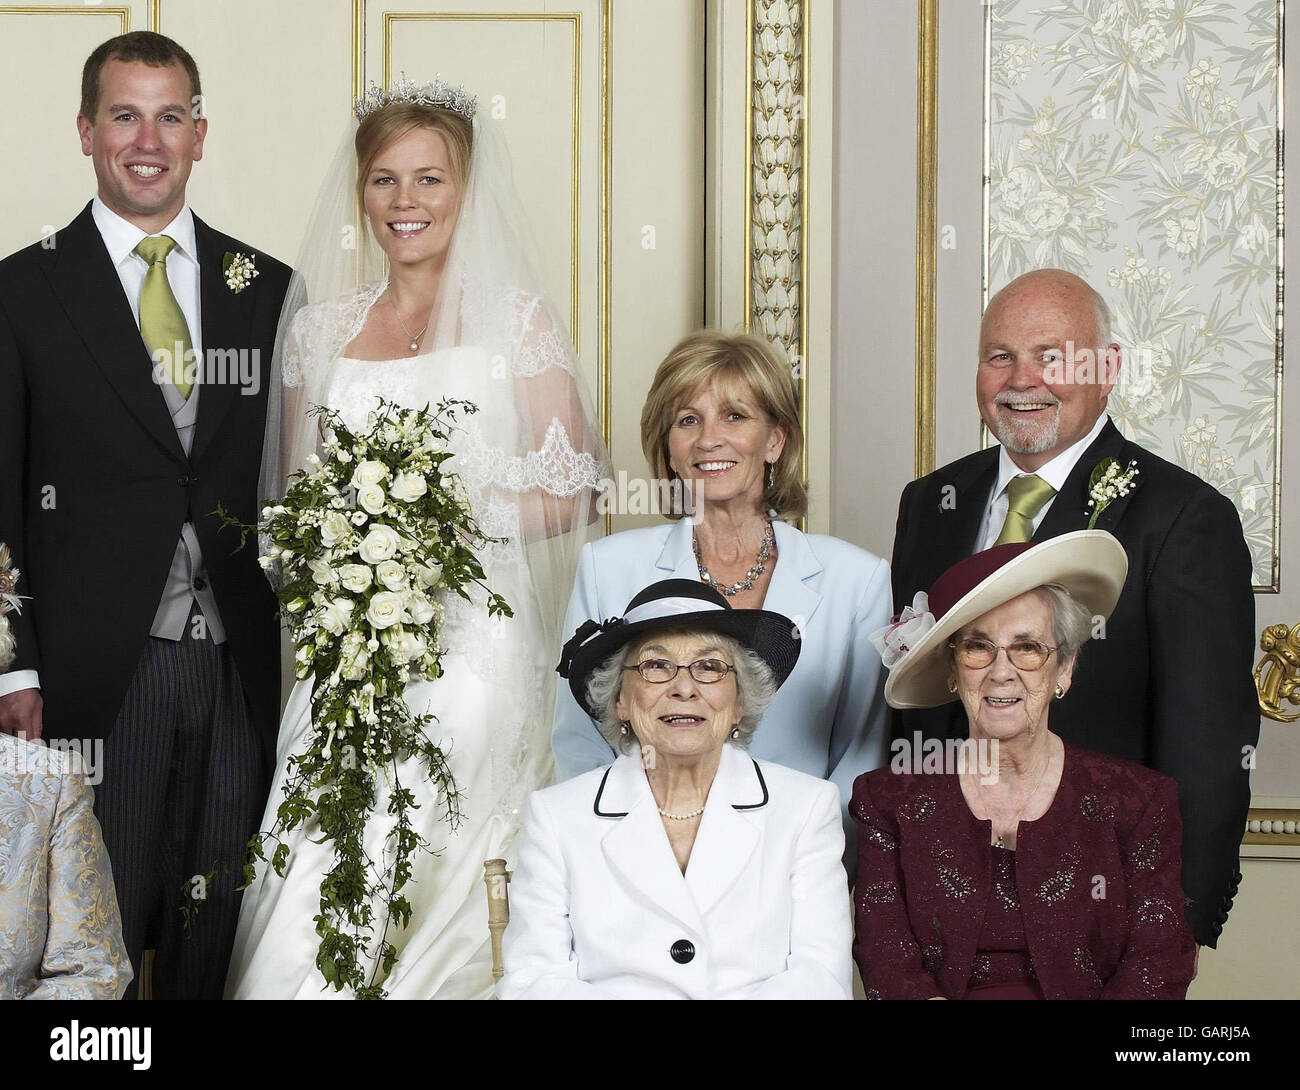 Royalty - Peter Phillips and Autumn Kelly Wedding - St ...